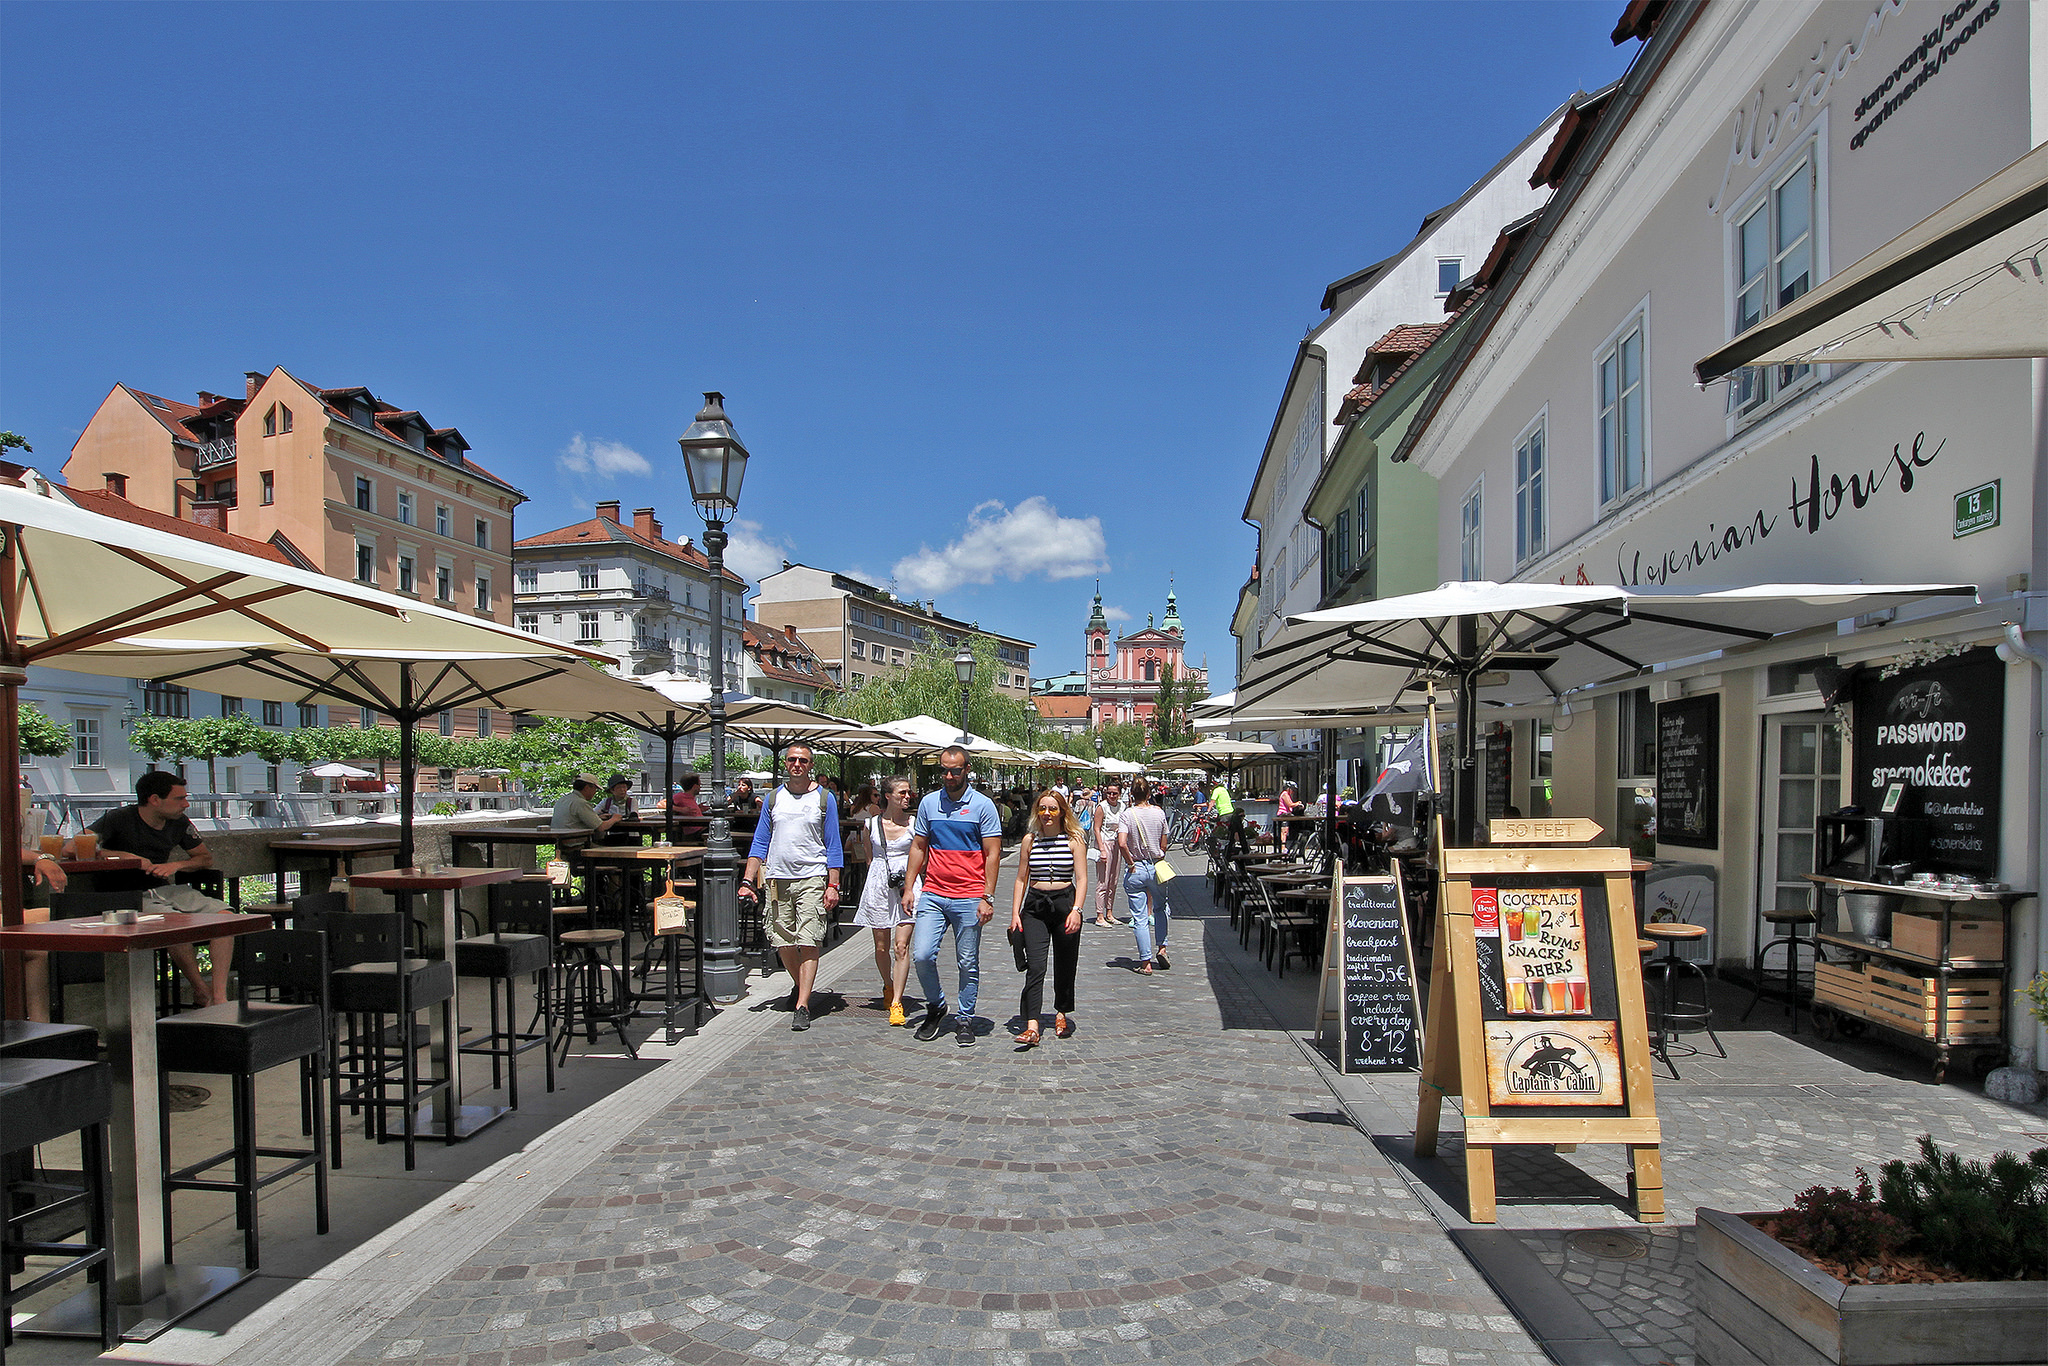 Ljubljana: from revitalisation to gentrification